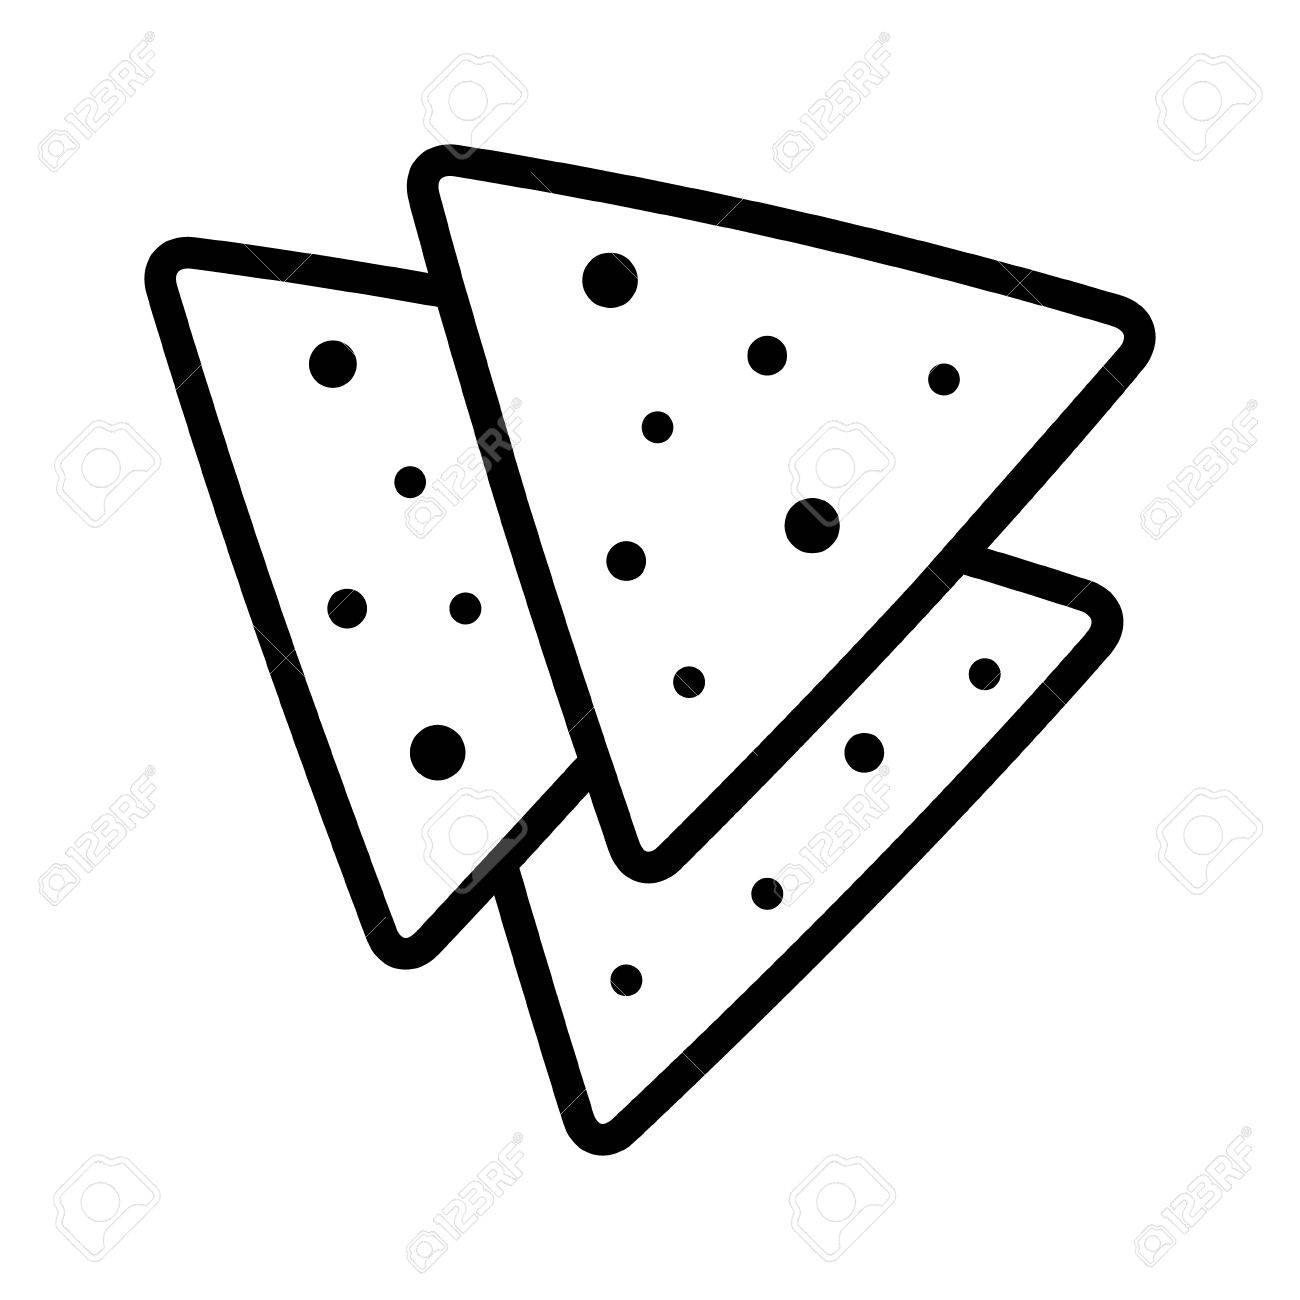 Tortilla chips or nachos tortillas line art icon for apps and...